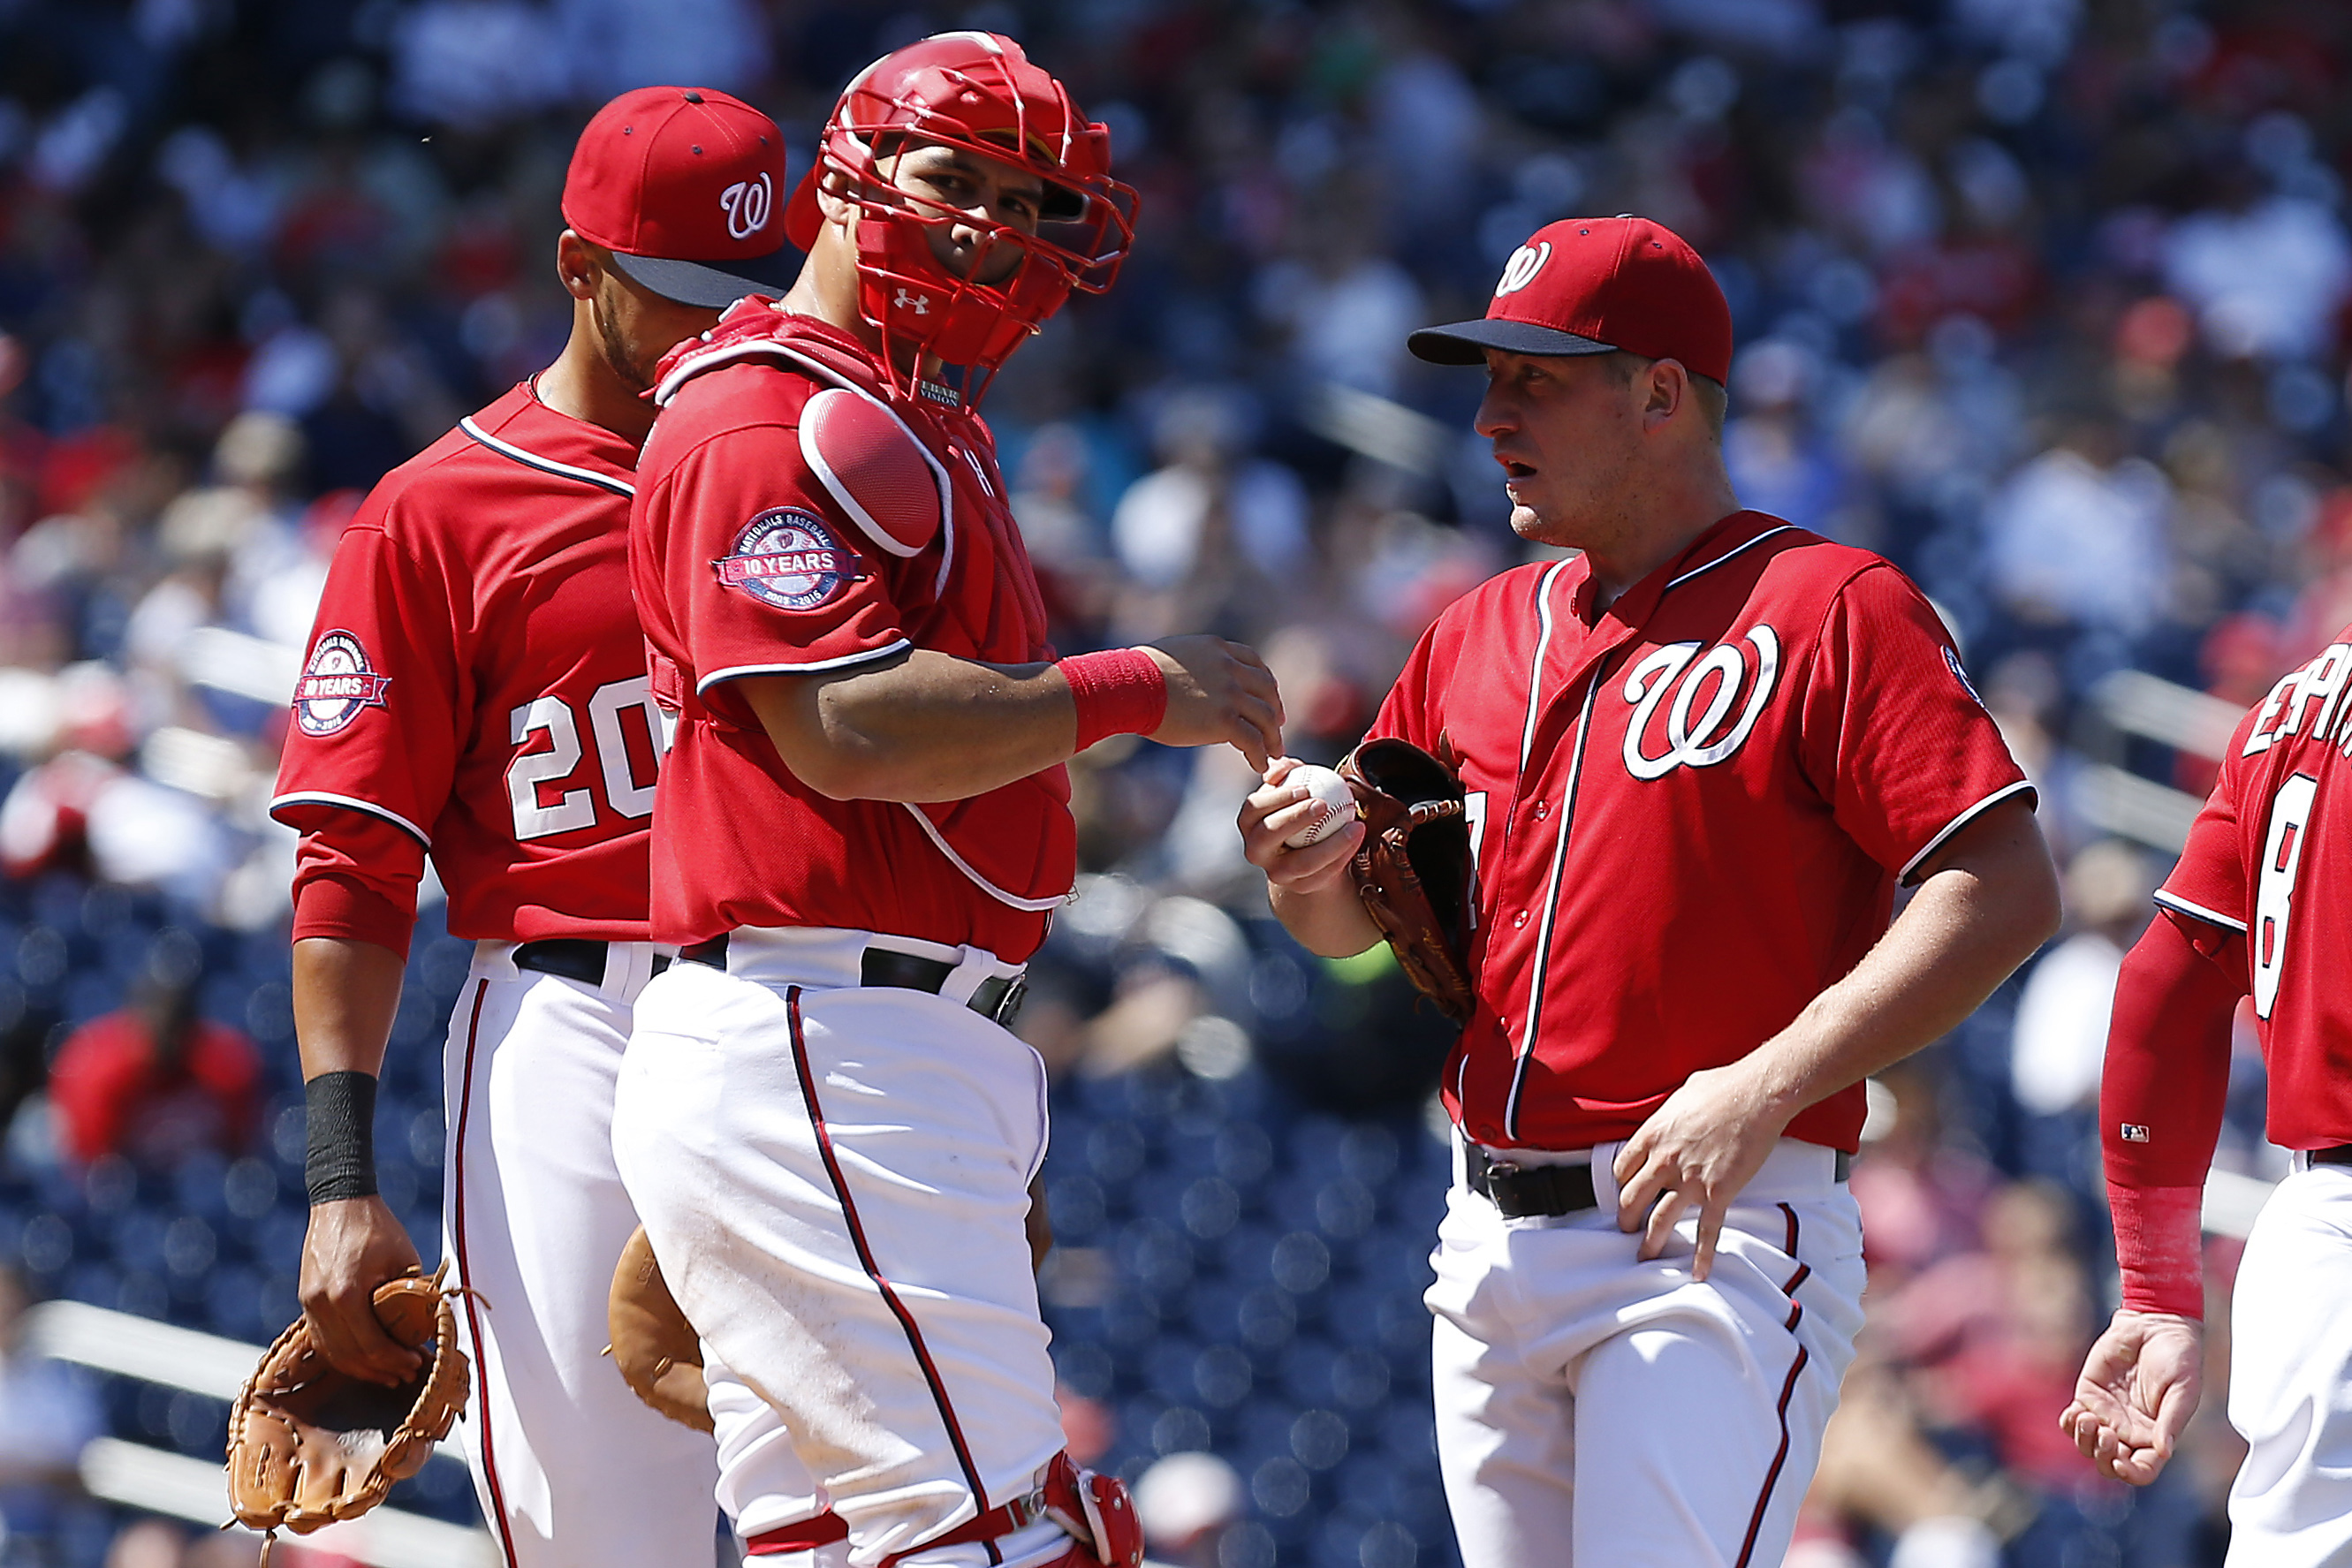 After allowing eight home runs in the first half this season, Jordan Zimmermann has allowed eight home runs in August. What's going on?